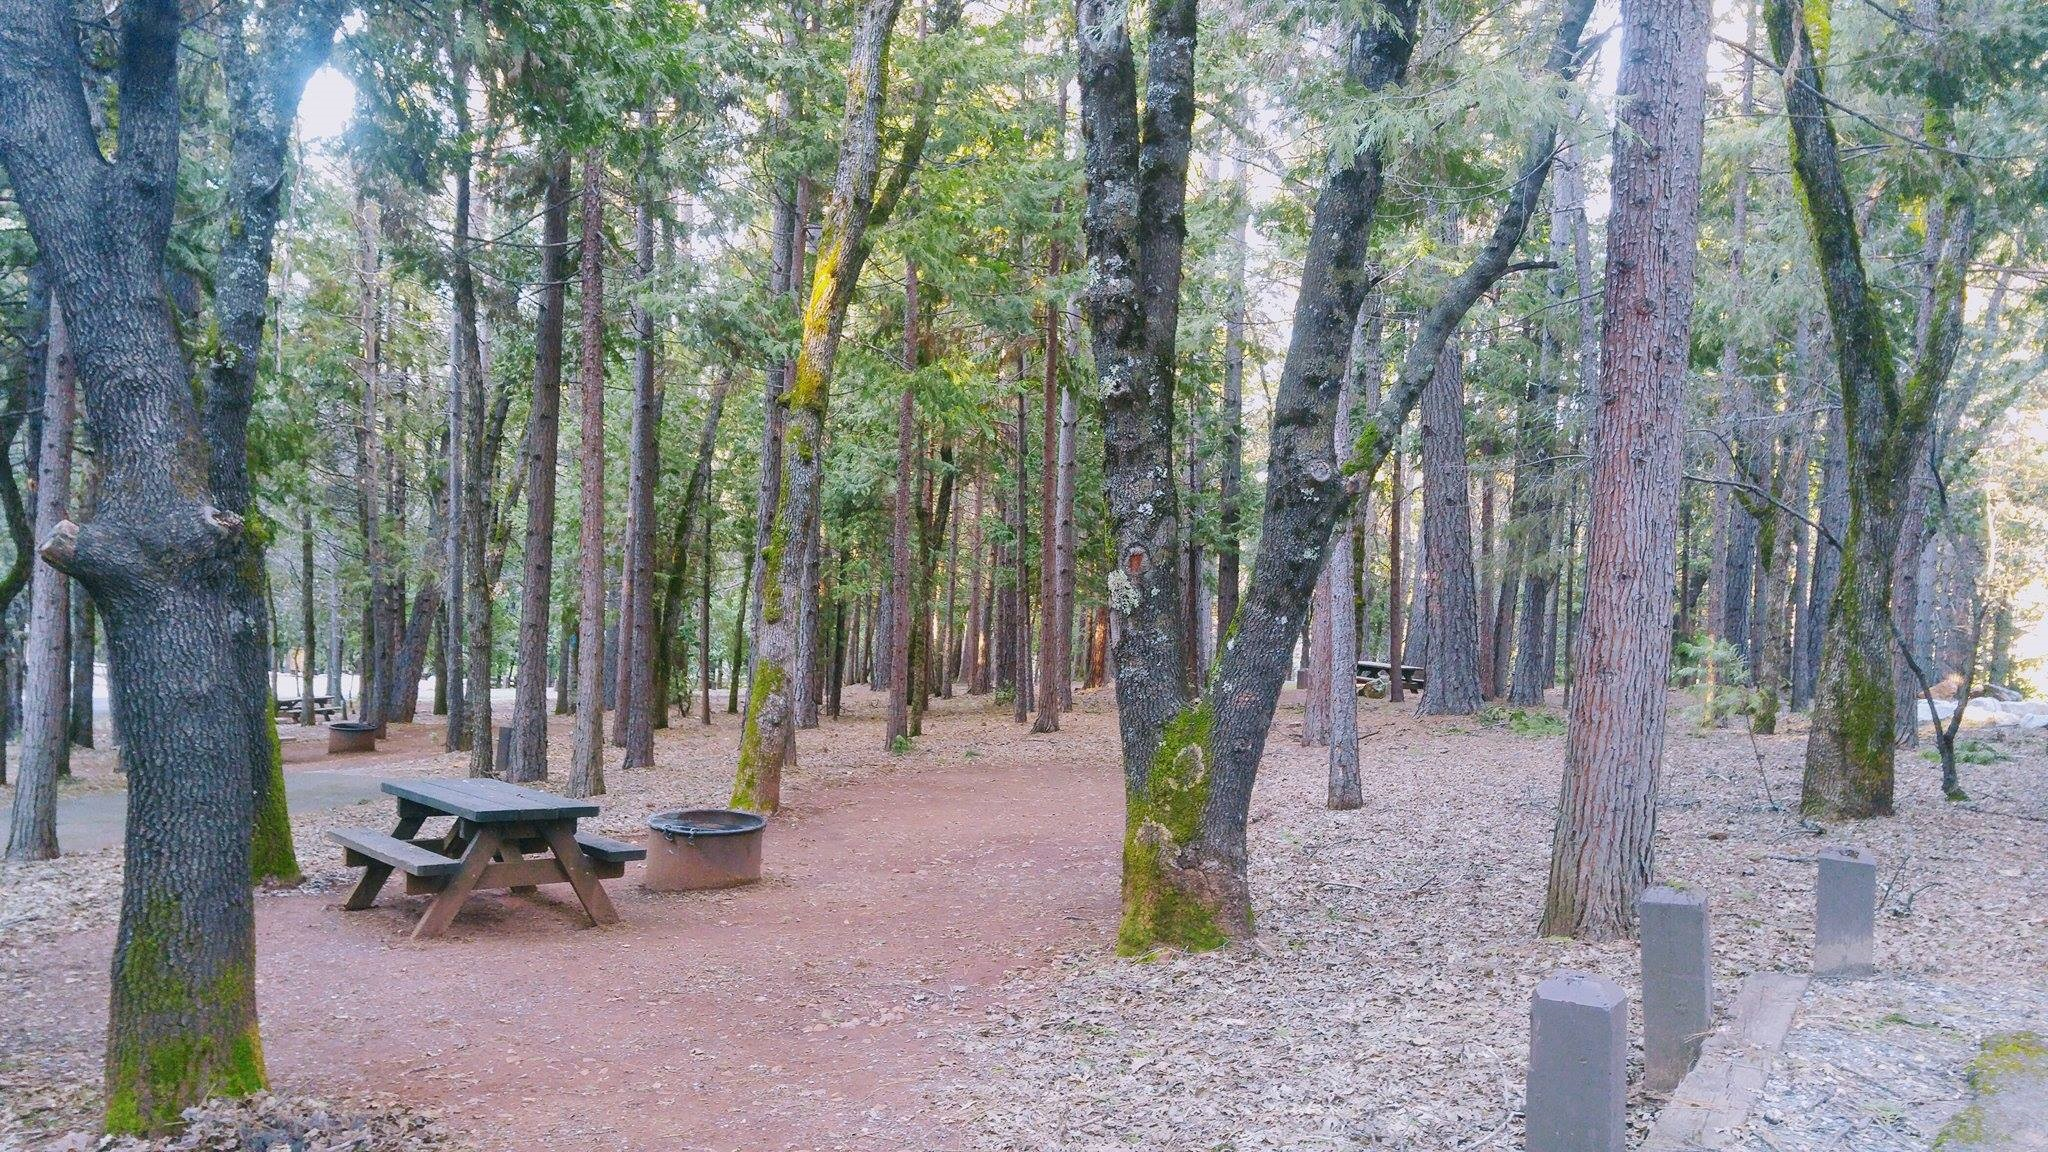 Campground Image